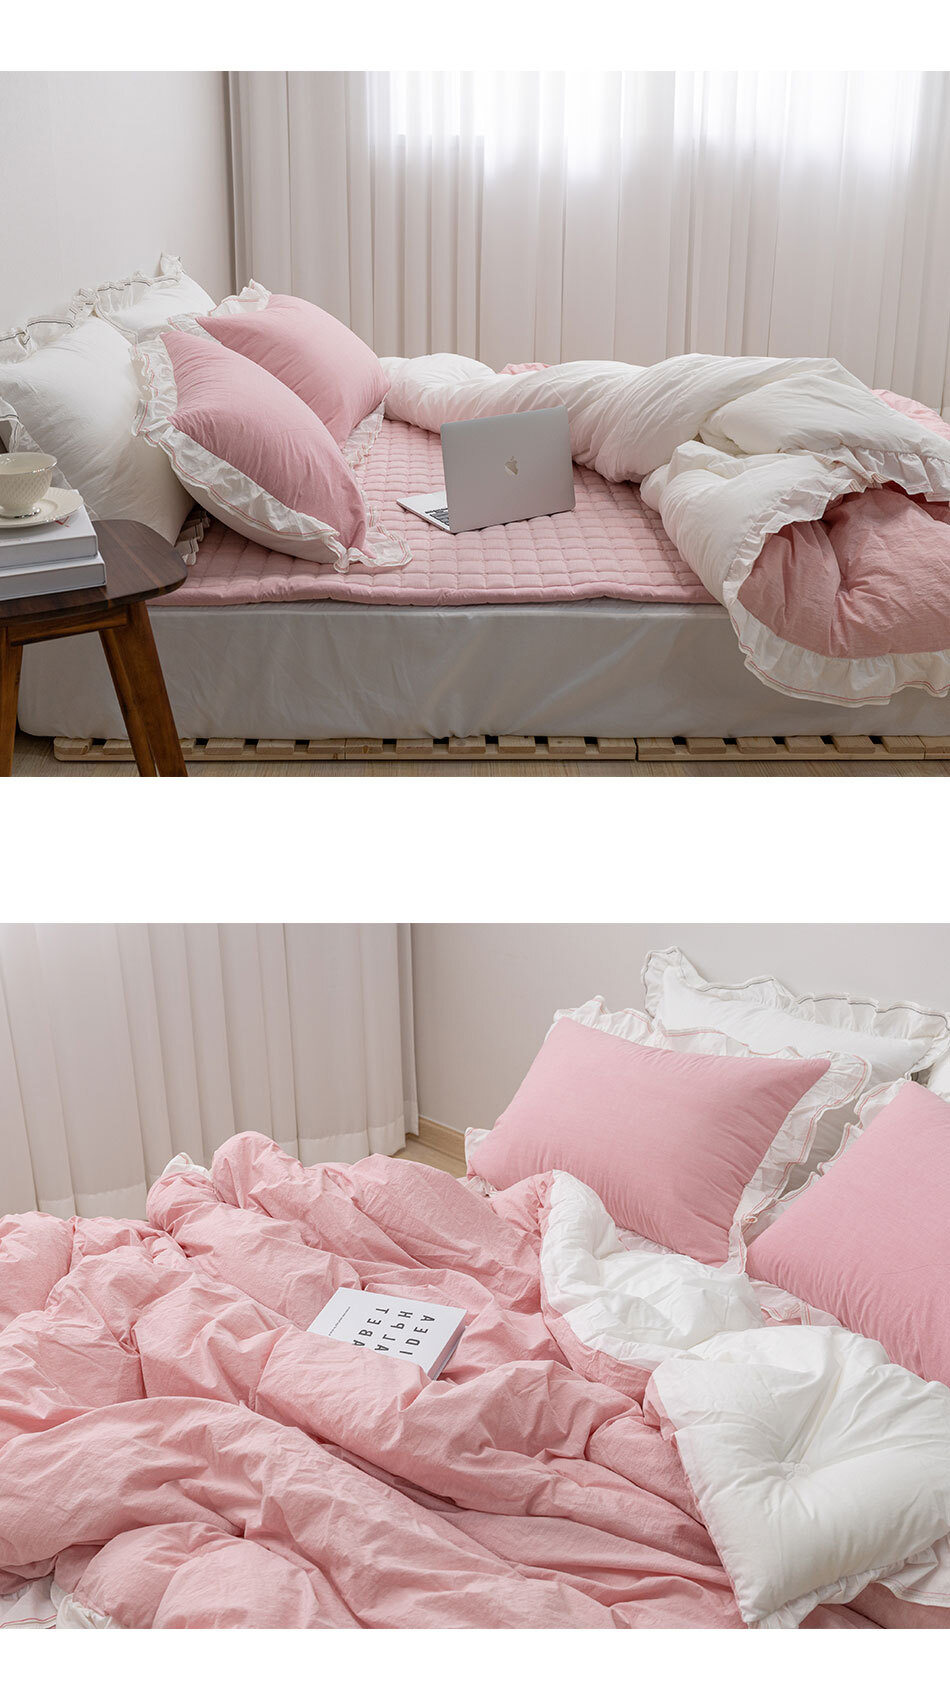 stay_bed_pink3.jpg